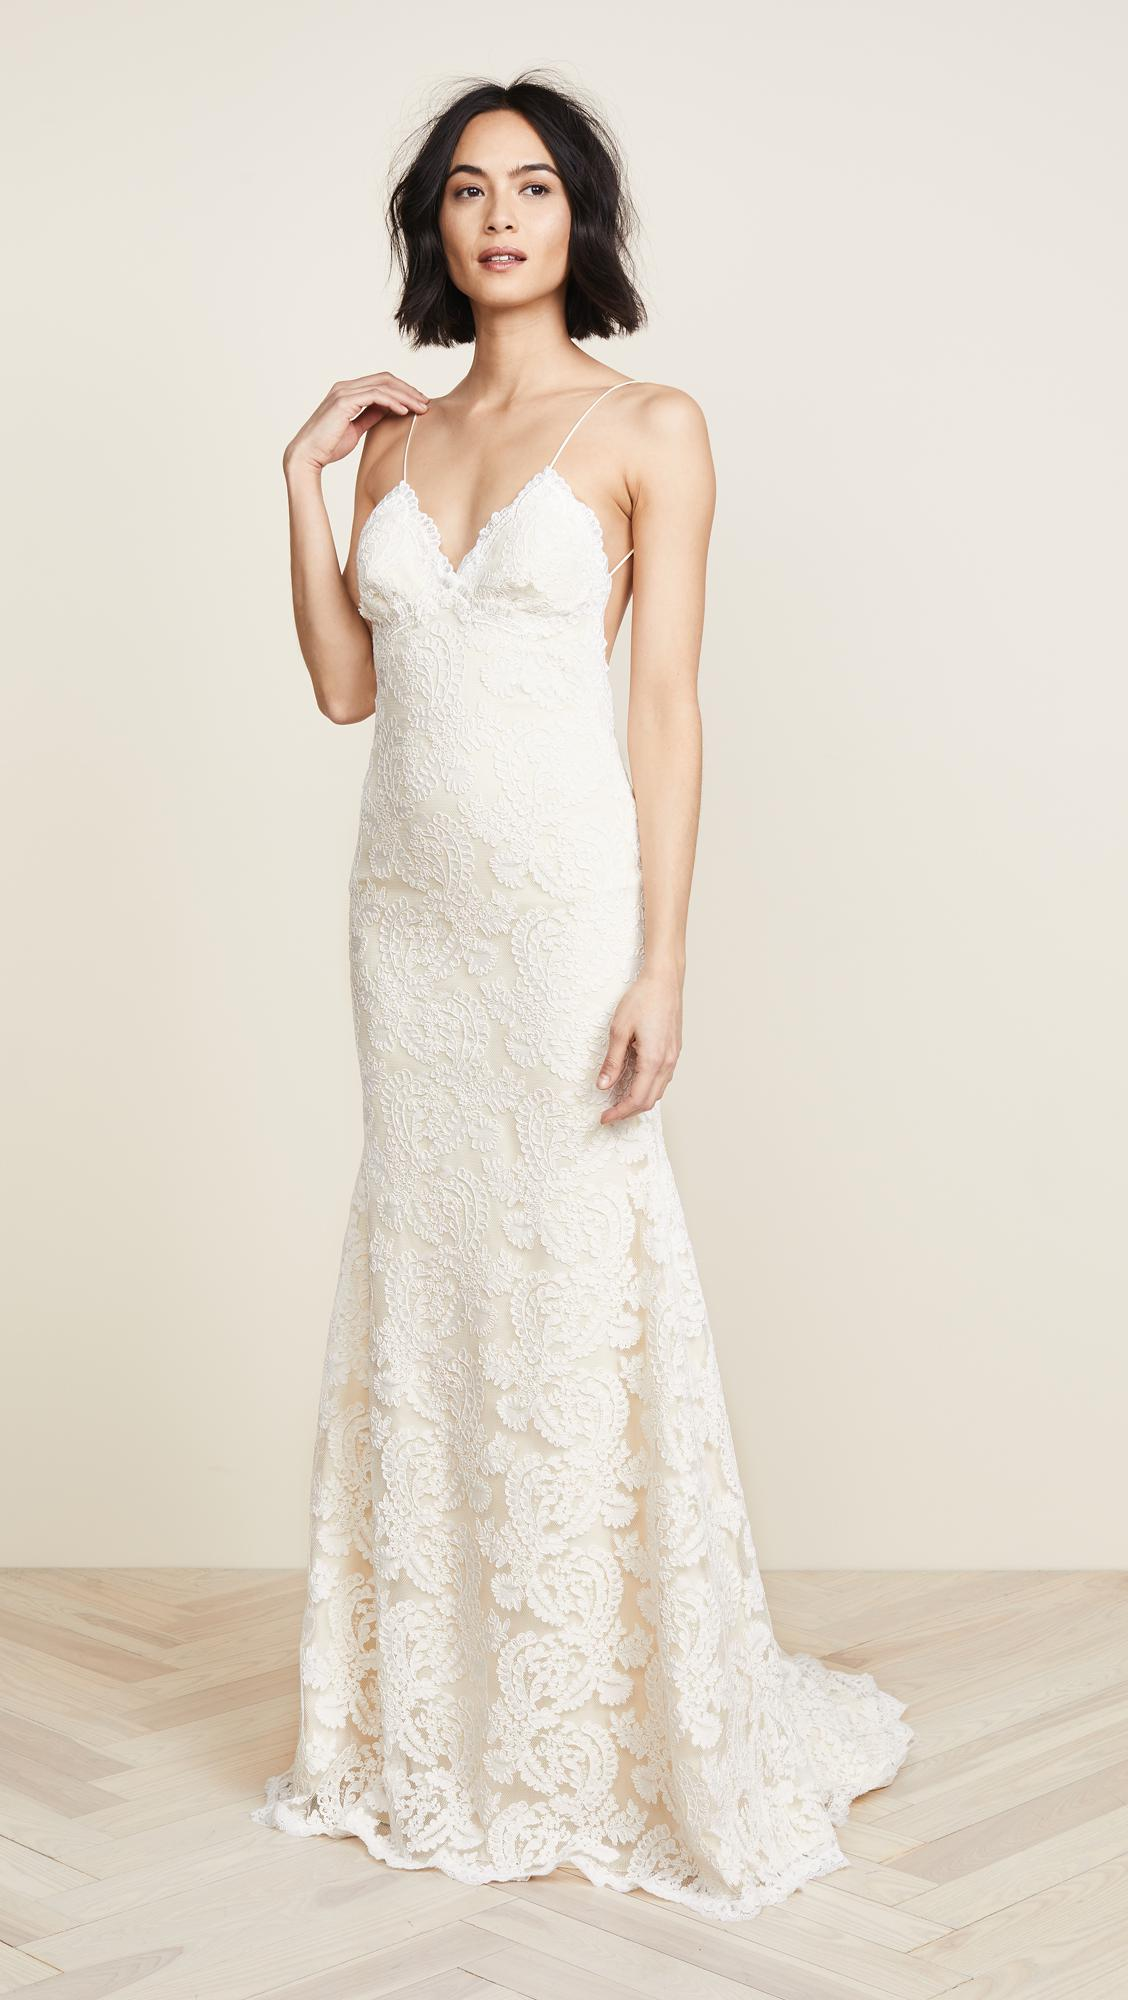 Lyst - Katie May Poipu Low Back Gown in White